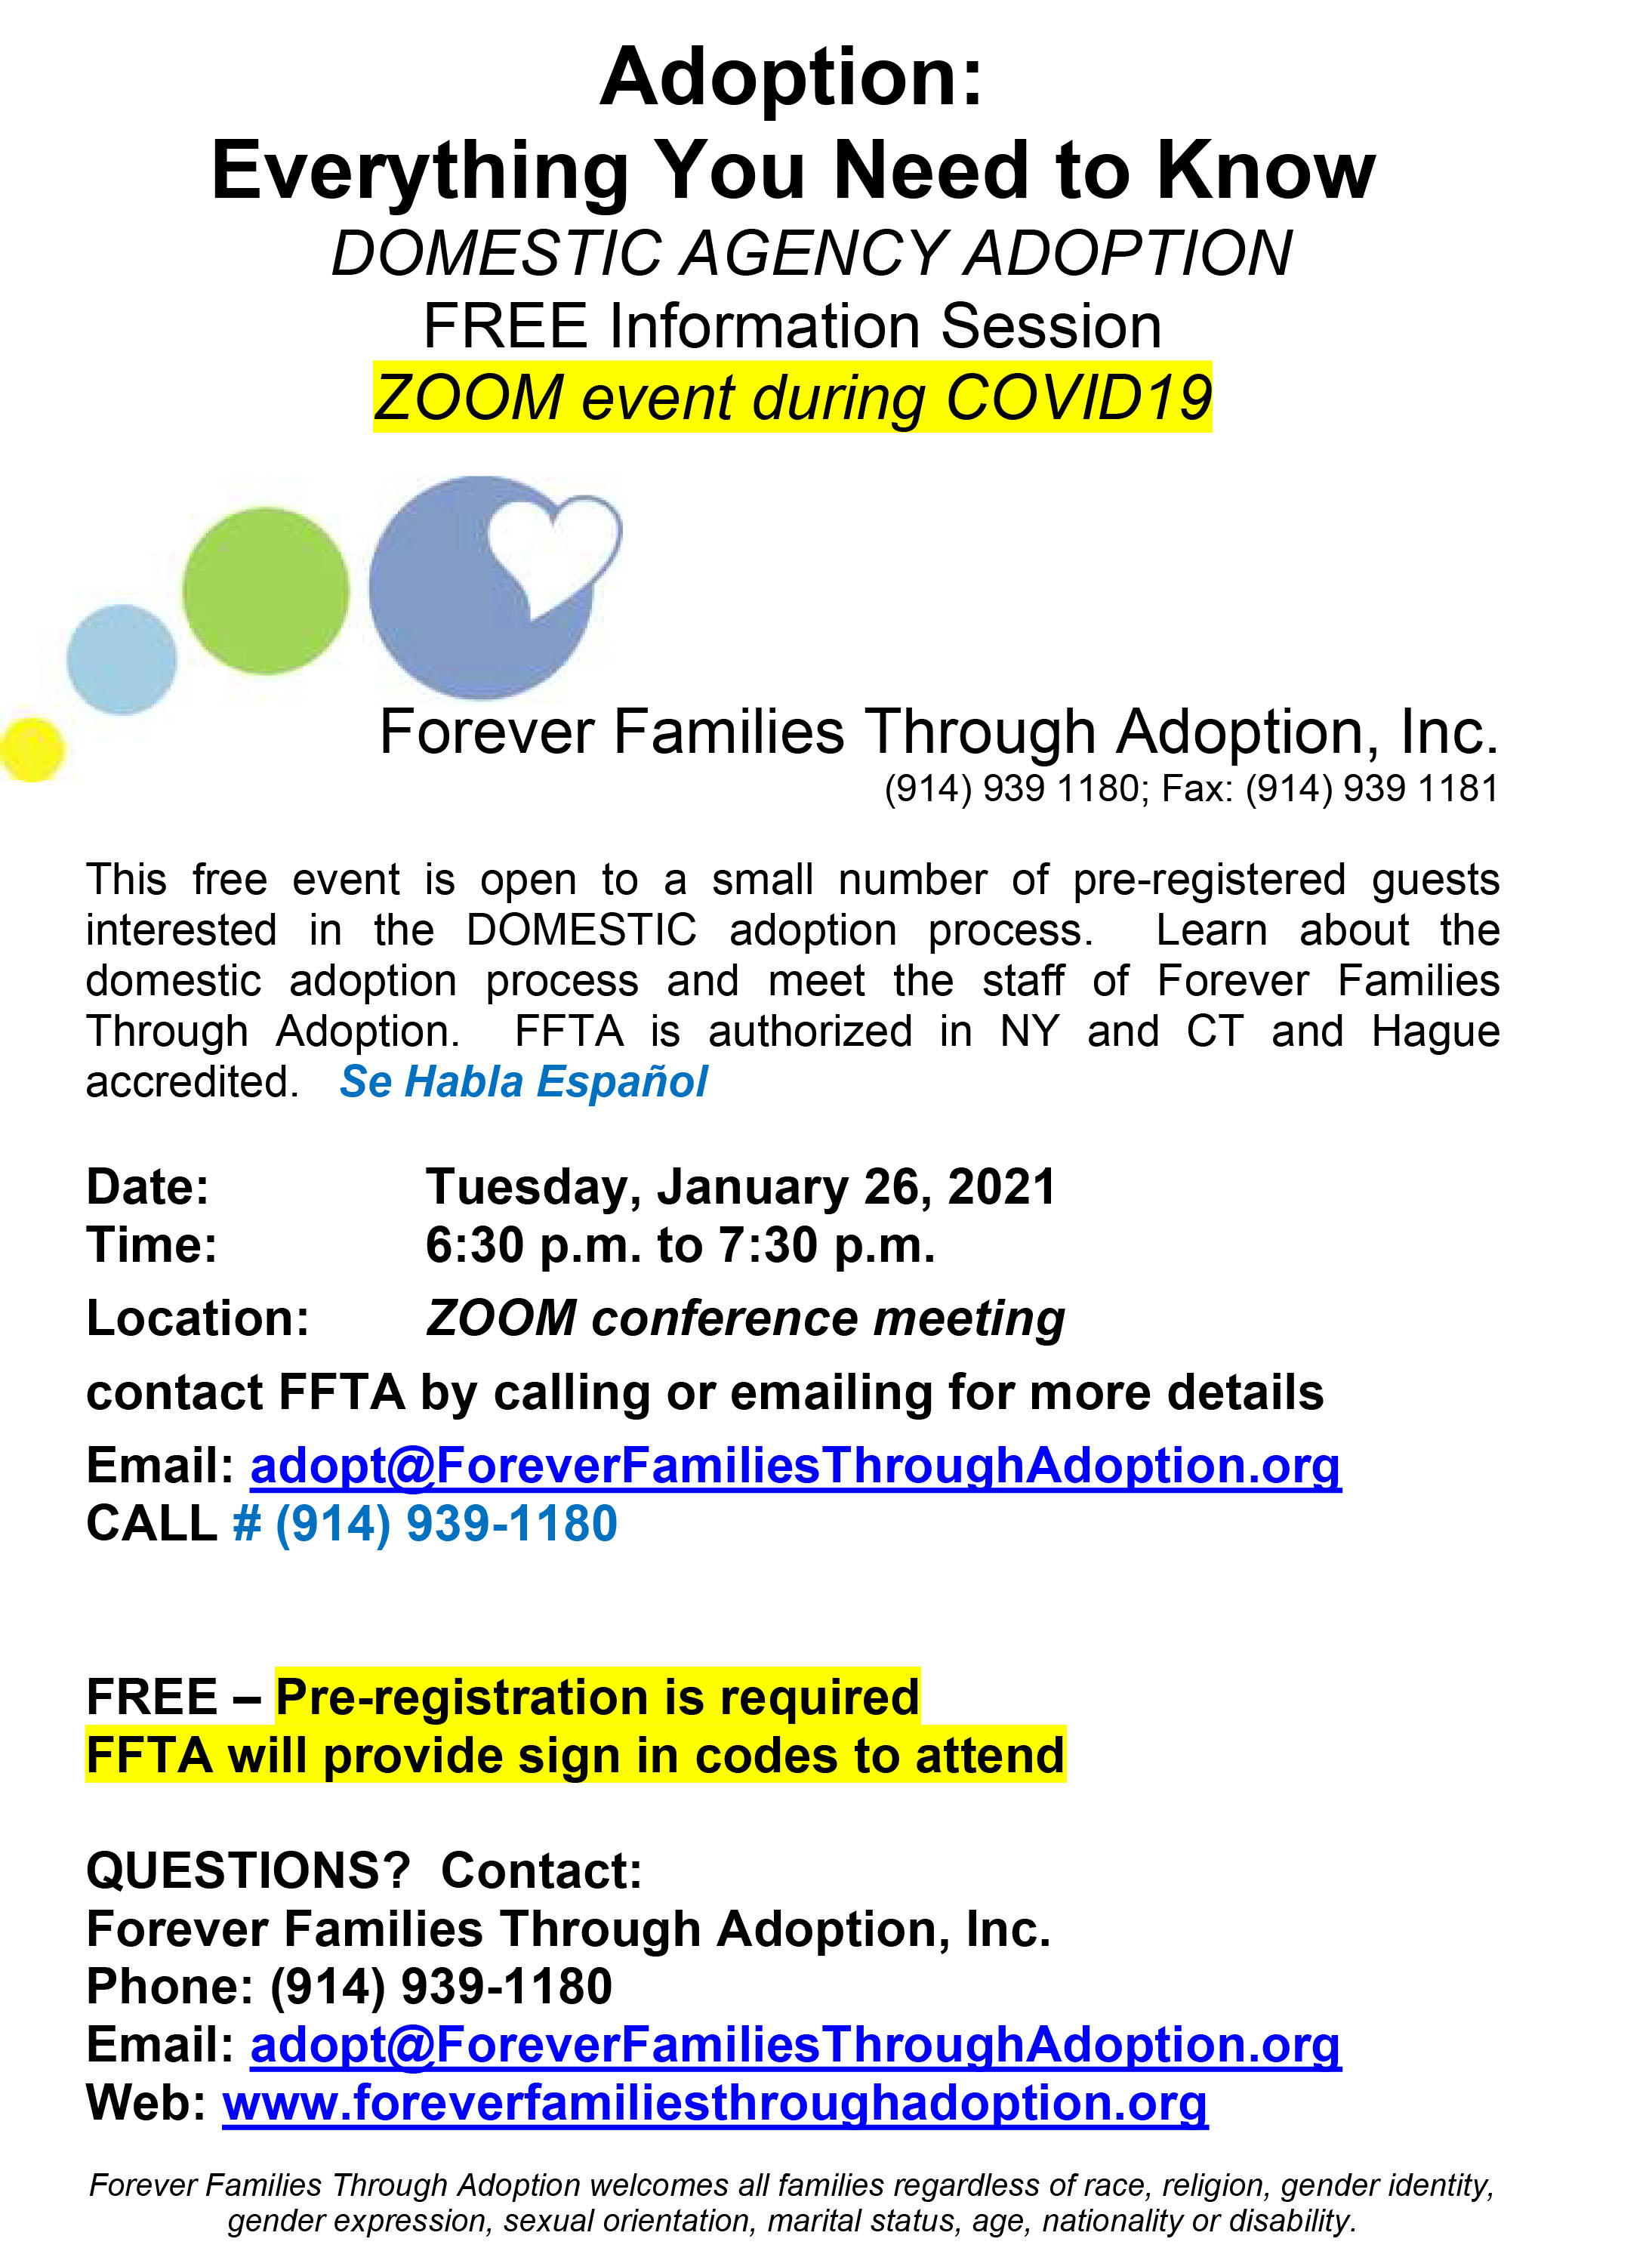 ONLINE Free ZOOM Adoption Information Session at Forever Families Through Adoption